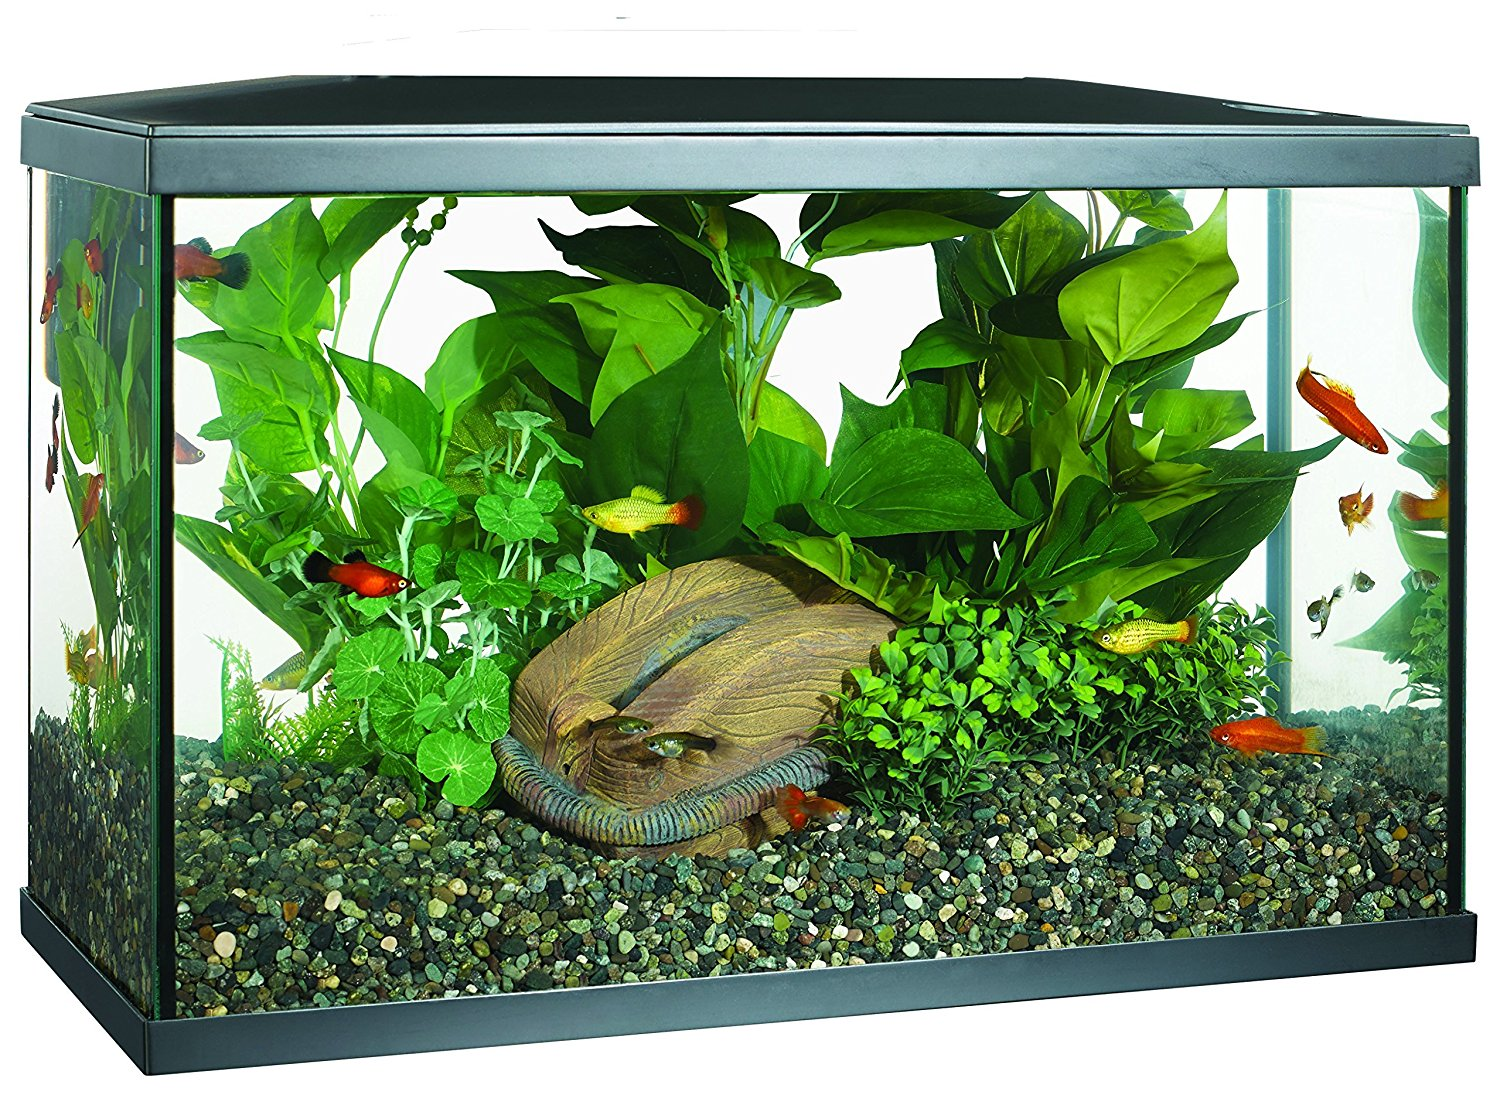 Top 5 Best 10 Gallon Fish Tanks